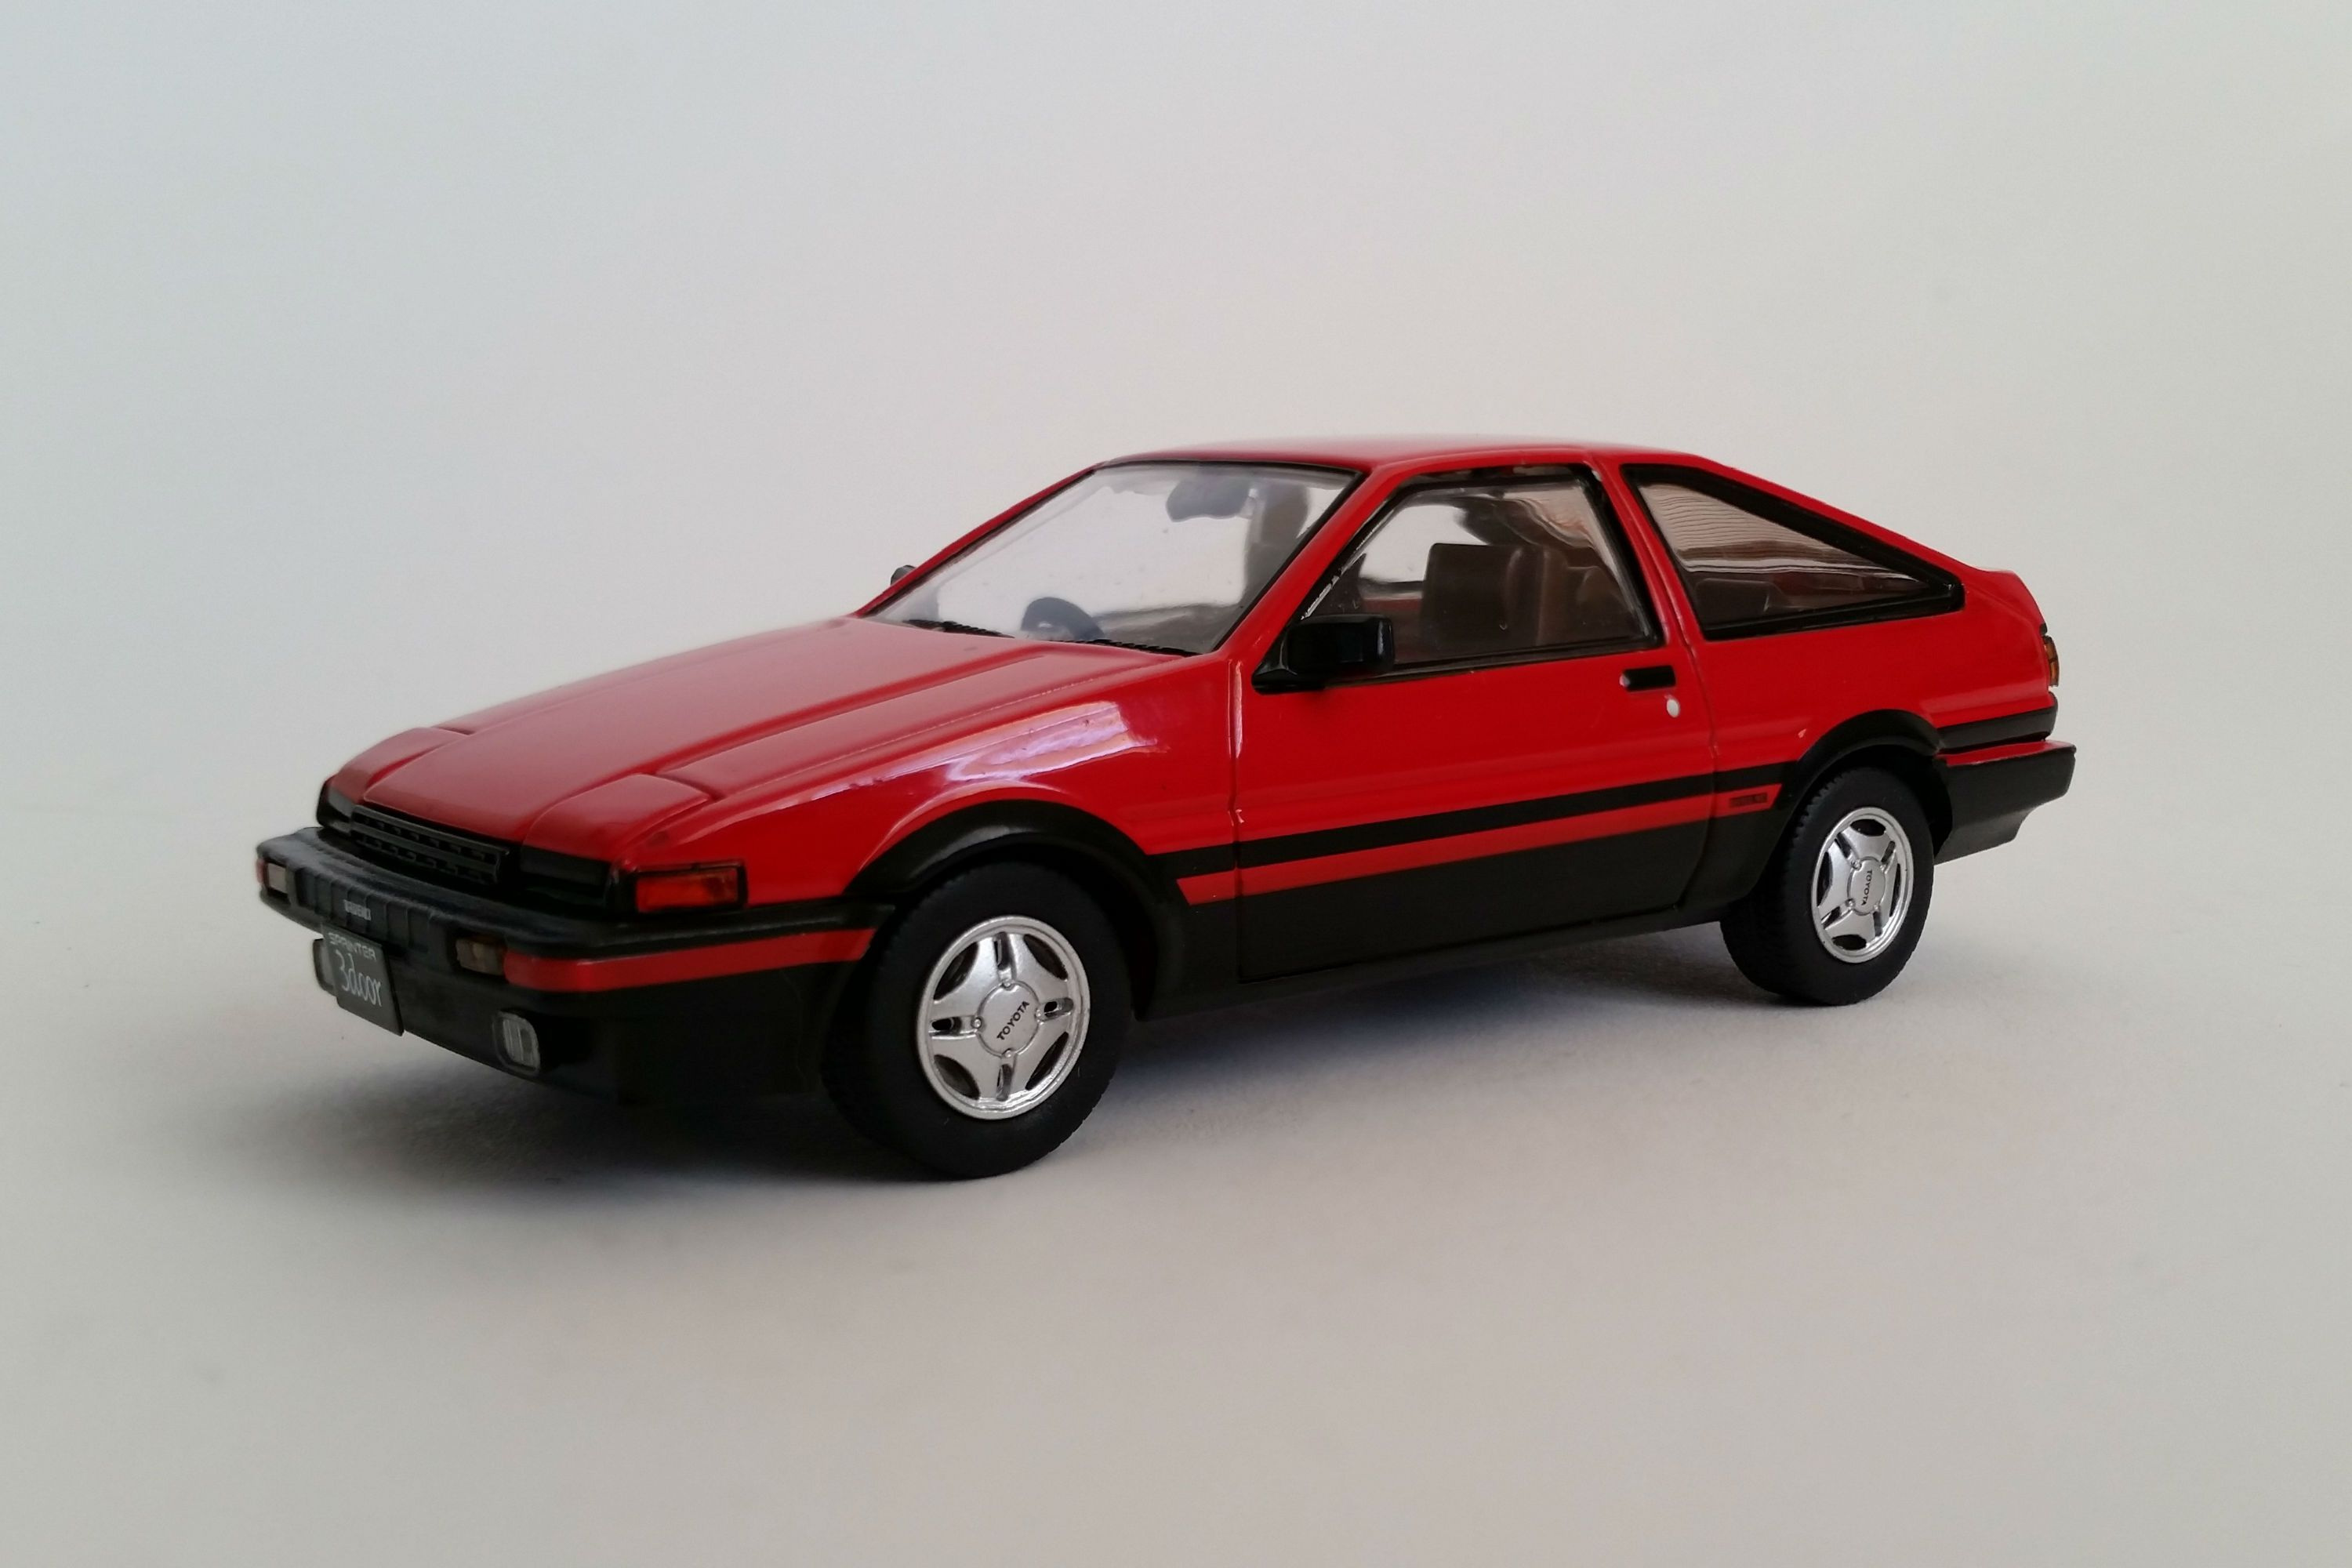 toyota sprinter trueno ae86 gt apex 1 43 scale diecast. Black Bedroom Furniture Sets. Home Design Ideas